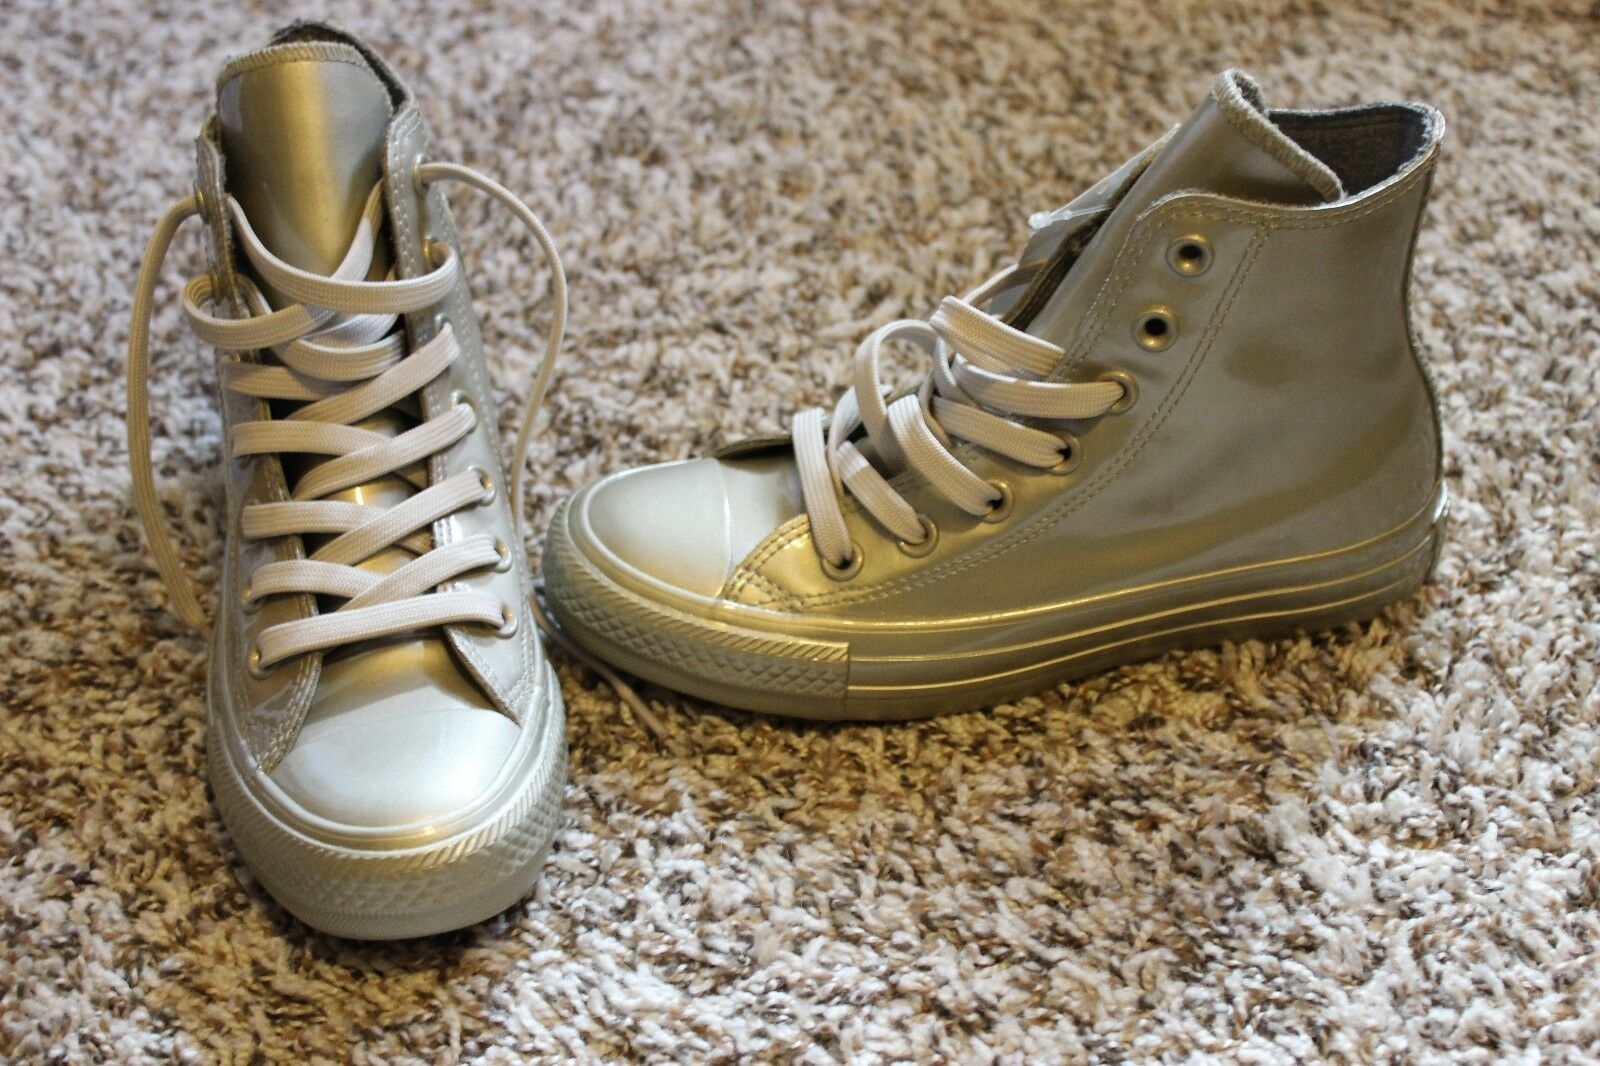 Converse Chuck Taylor gold metallic women's size 5 shoes New without box hi top